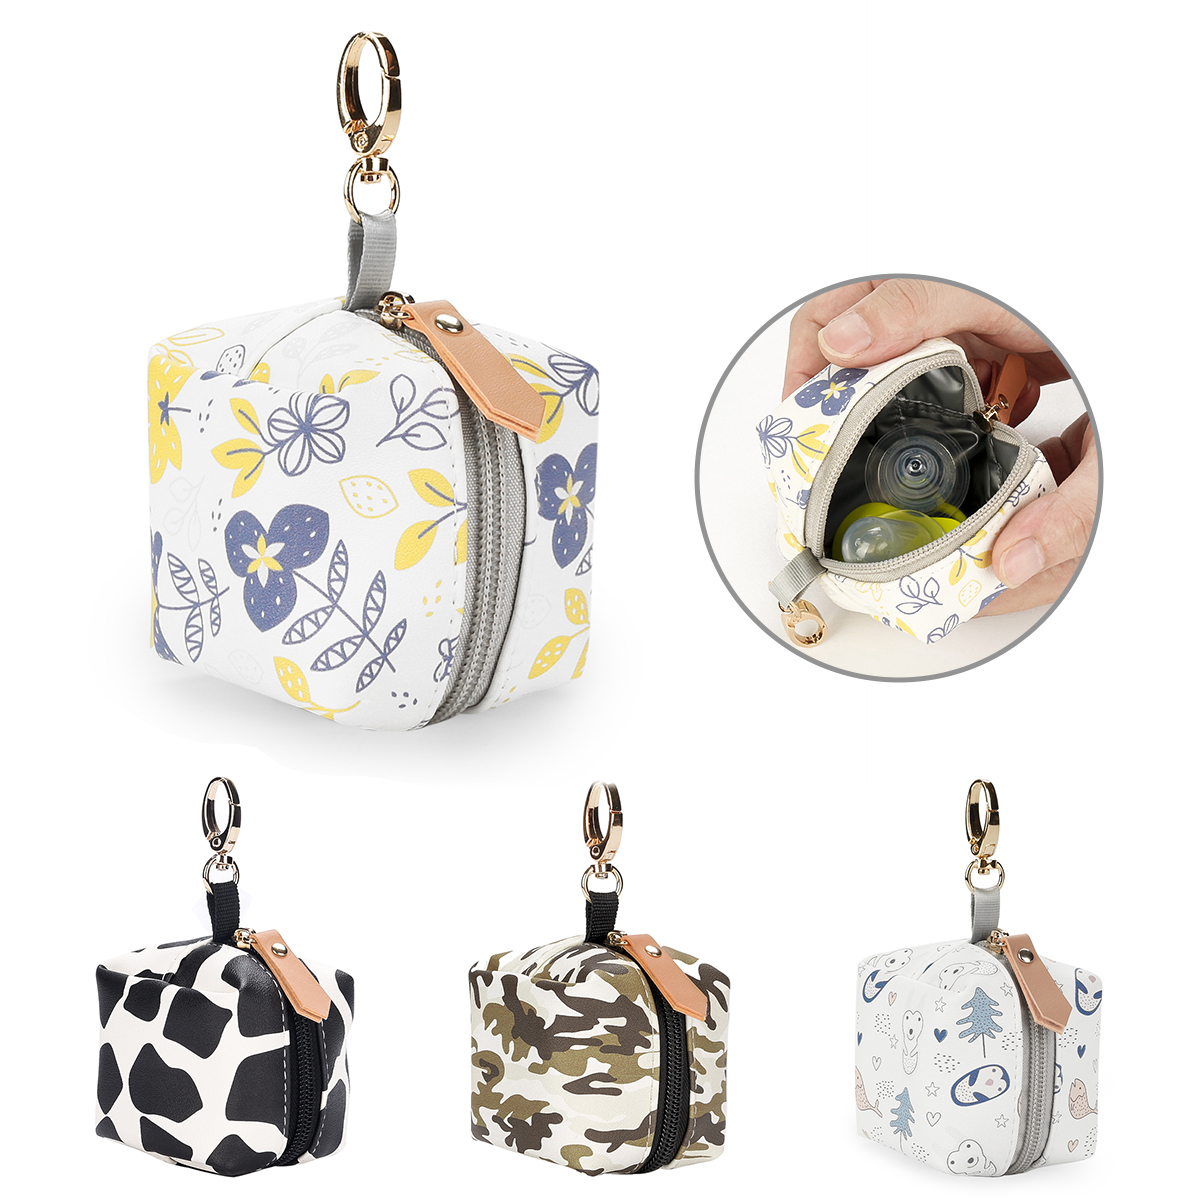 525.0¥ 20% OFF|Pacifier Porter Protective and Clean Pacifier Case Holds 2+ Pacifiers|Nipple Storage...